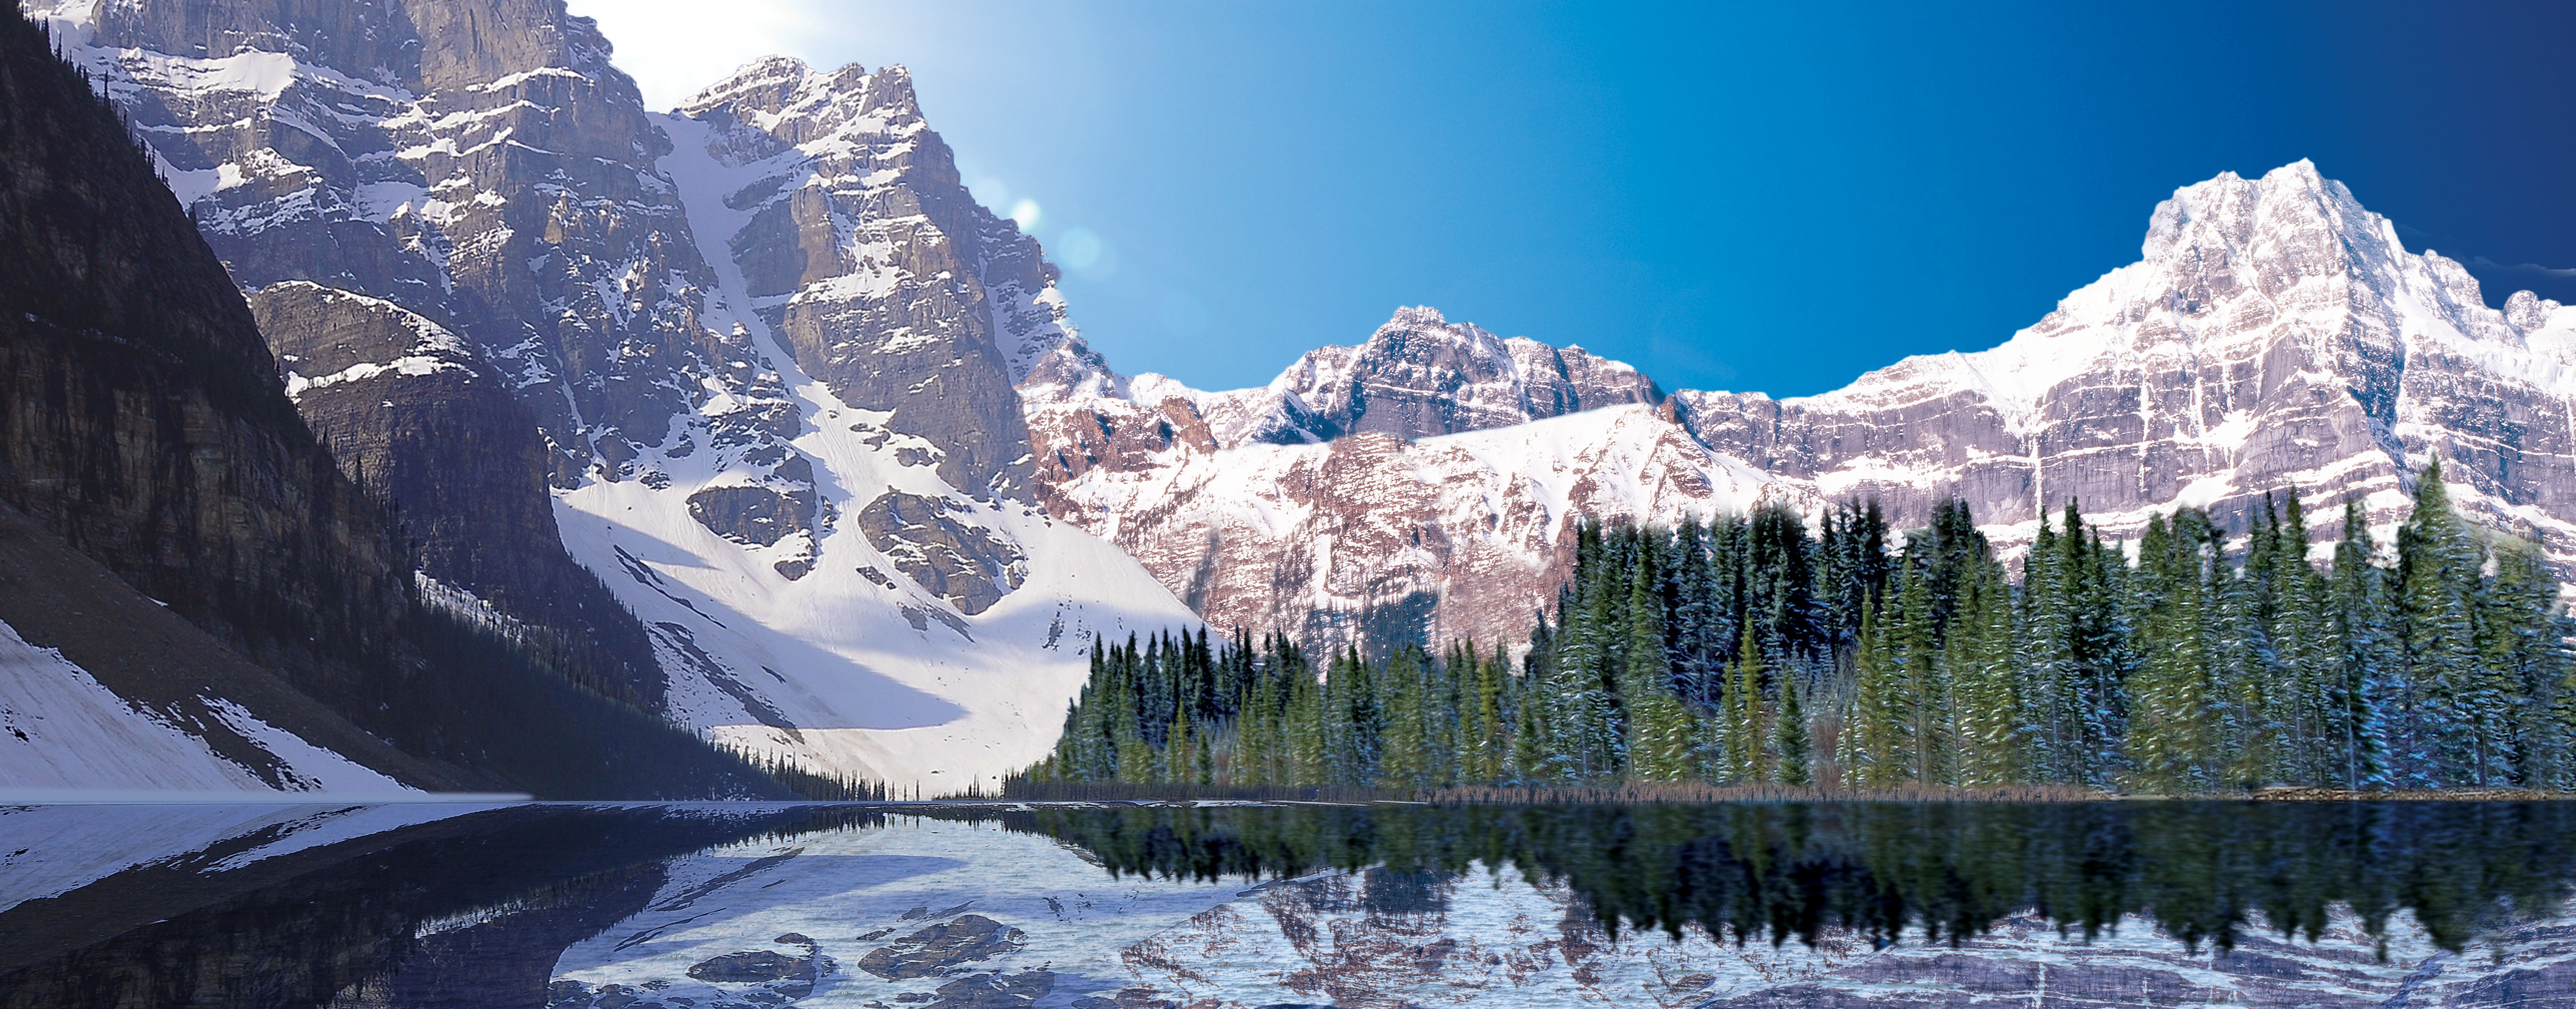 lake with snowy mountains